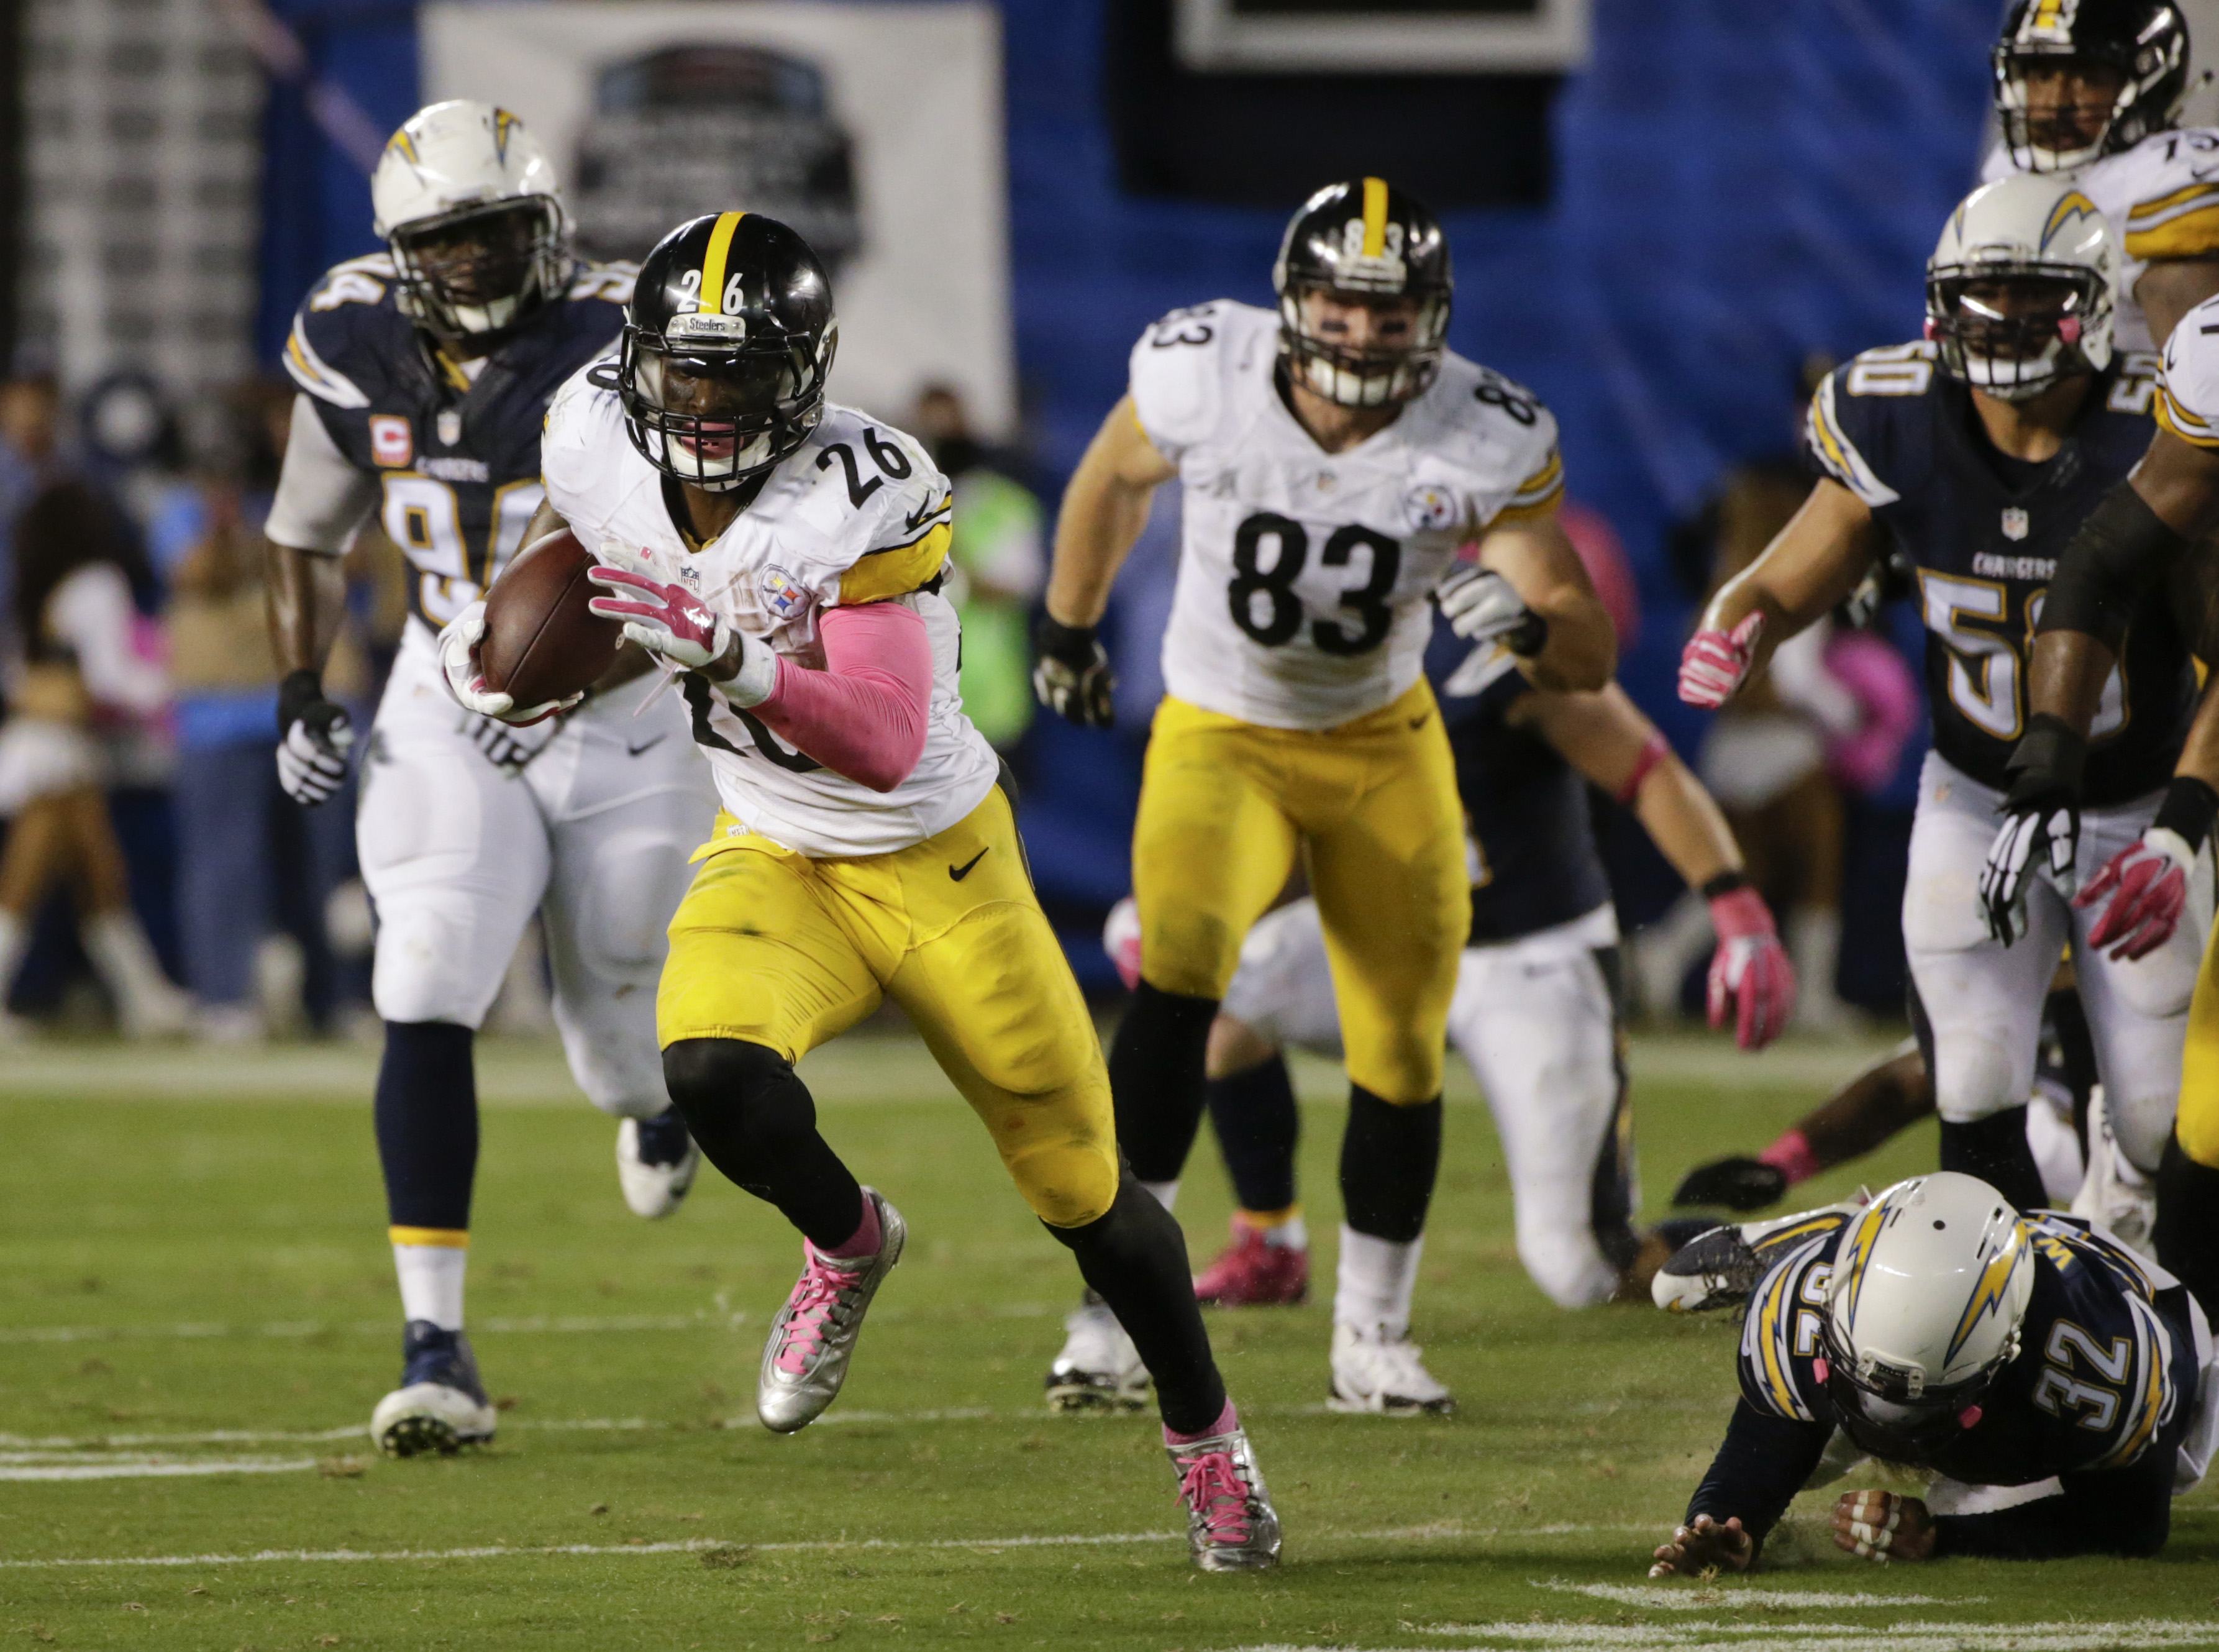 Pittsburgh Steelers running back Le'Veon Bell moves upfield against the San Diego Chargers during the first half of an NFL football game Monday, Oct. 12, 2015, in San Diego. (AP Photo/Lenny Ignelzi)